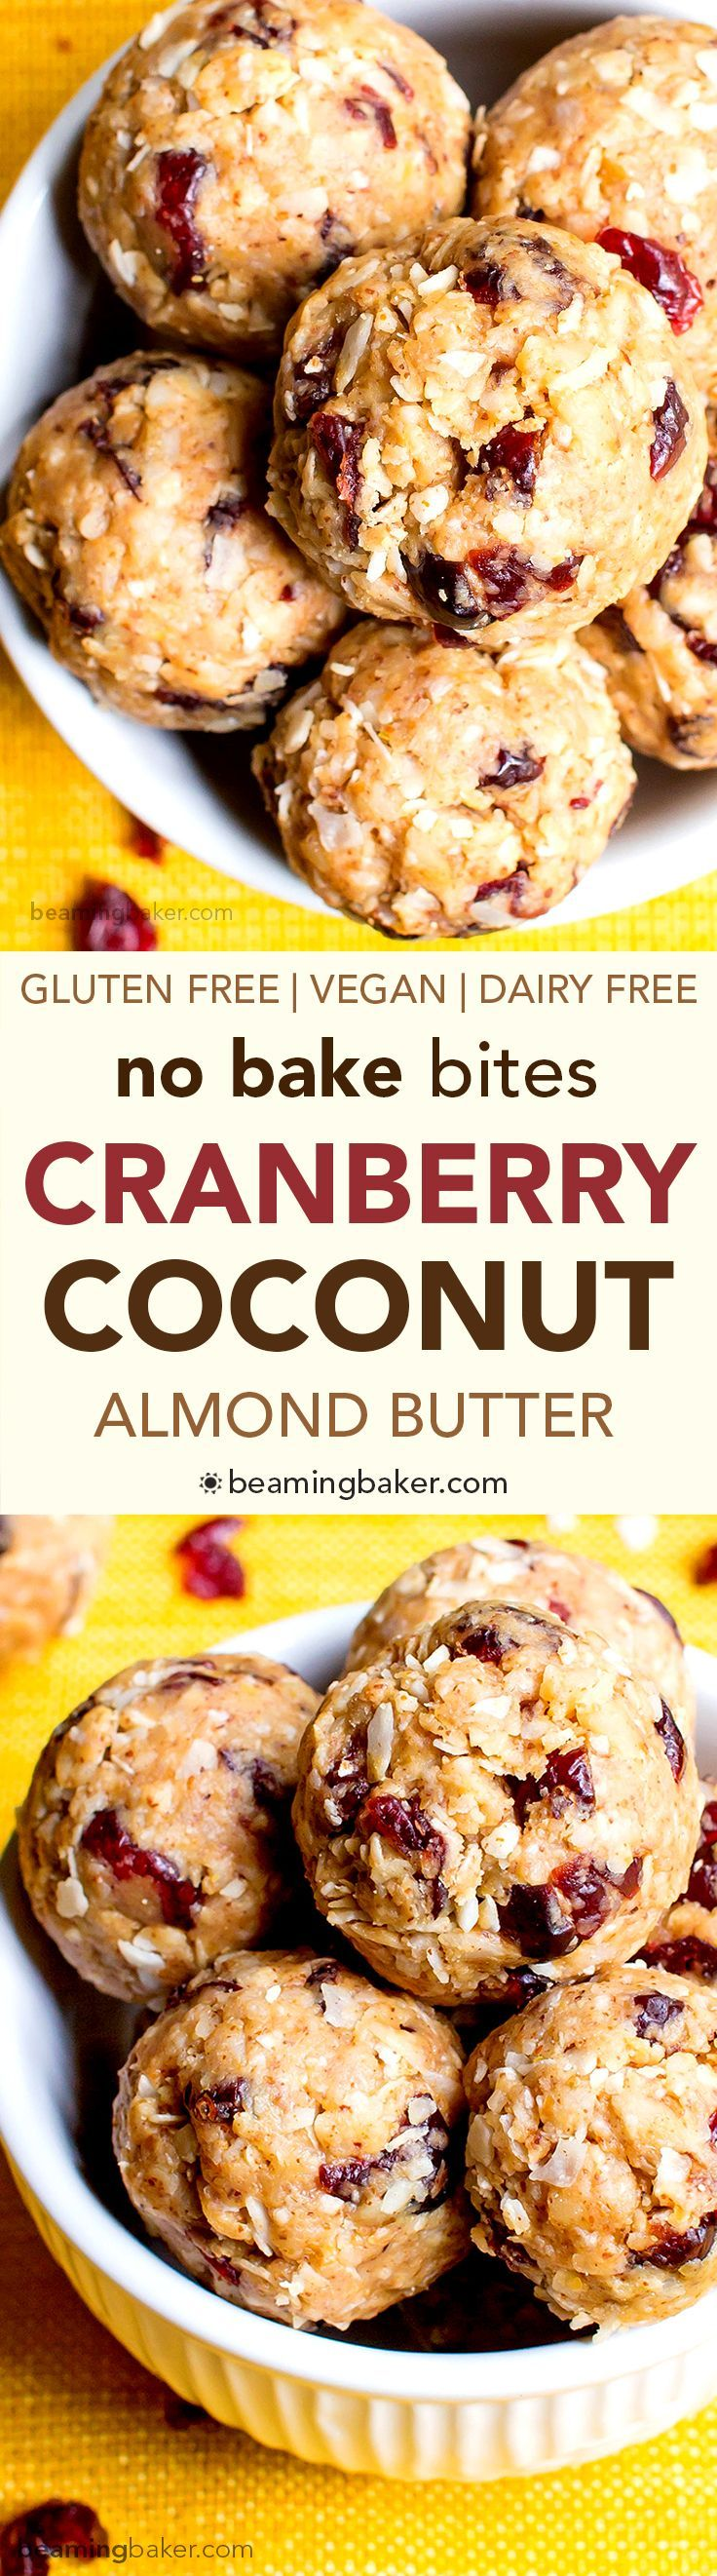 No Bake Cranberry Coconut Energy Bites (V, GF, DF): just 7 simple ingredients for delicious protein-packed energy bites. #Vegan #GlutenFree #DairyFree | BeamingBaker.com